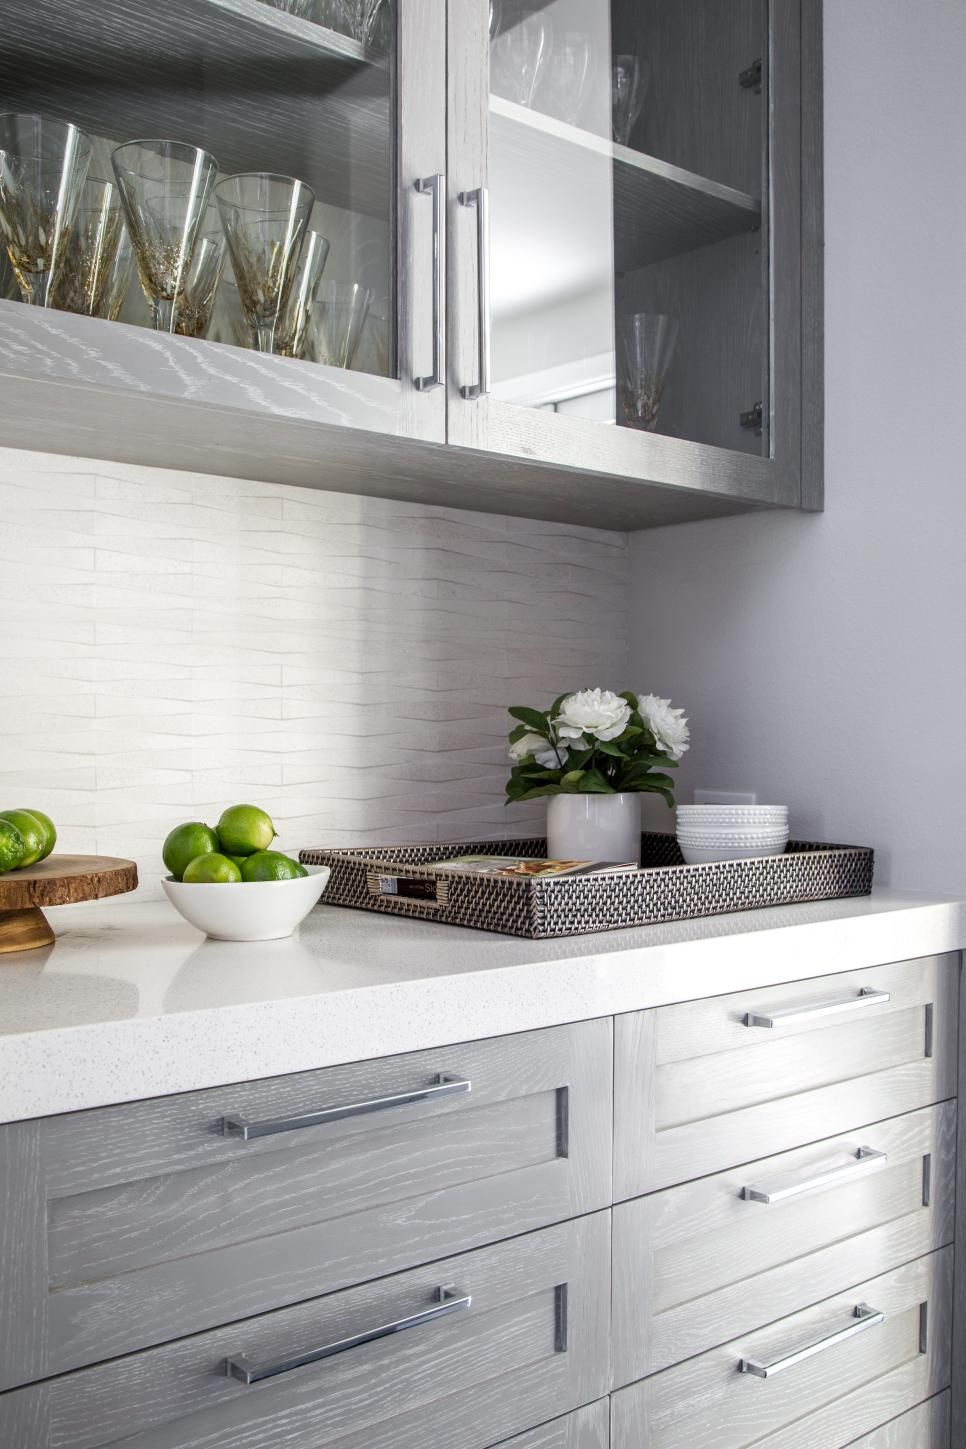 10 Cosmetic Changes To Sell Your Home Fast Hgtv Modern Kitchen Cabinet Design Kitchen Cabinets Repainting Kitchen Cabinets